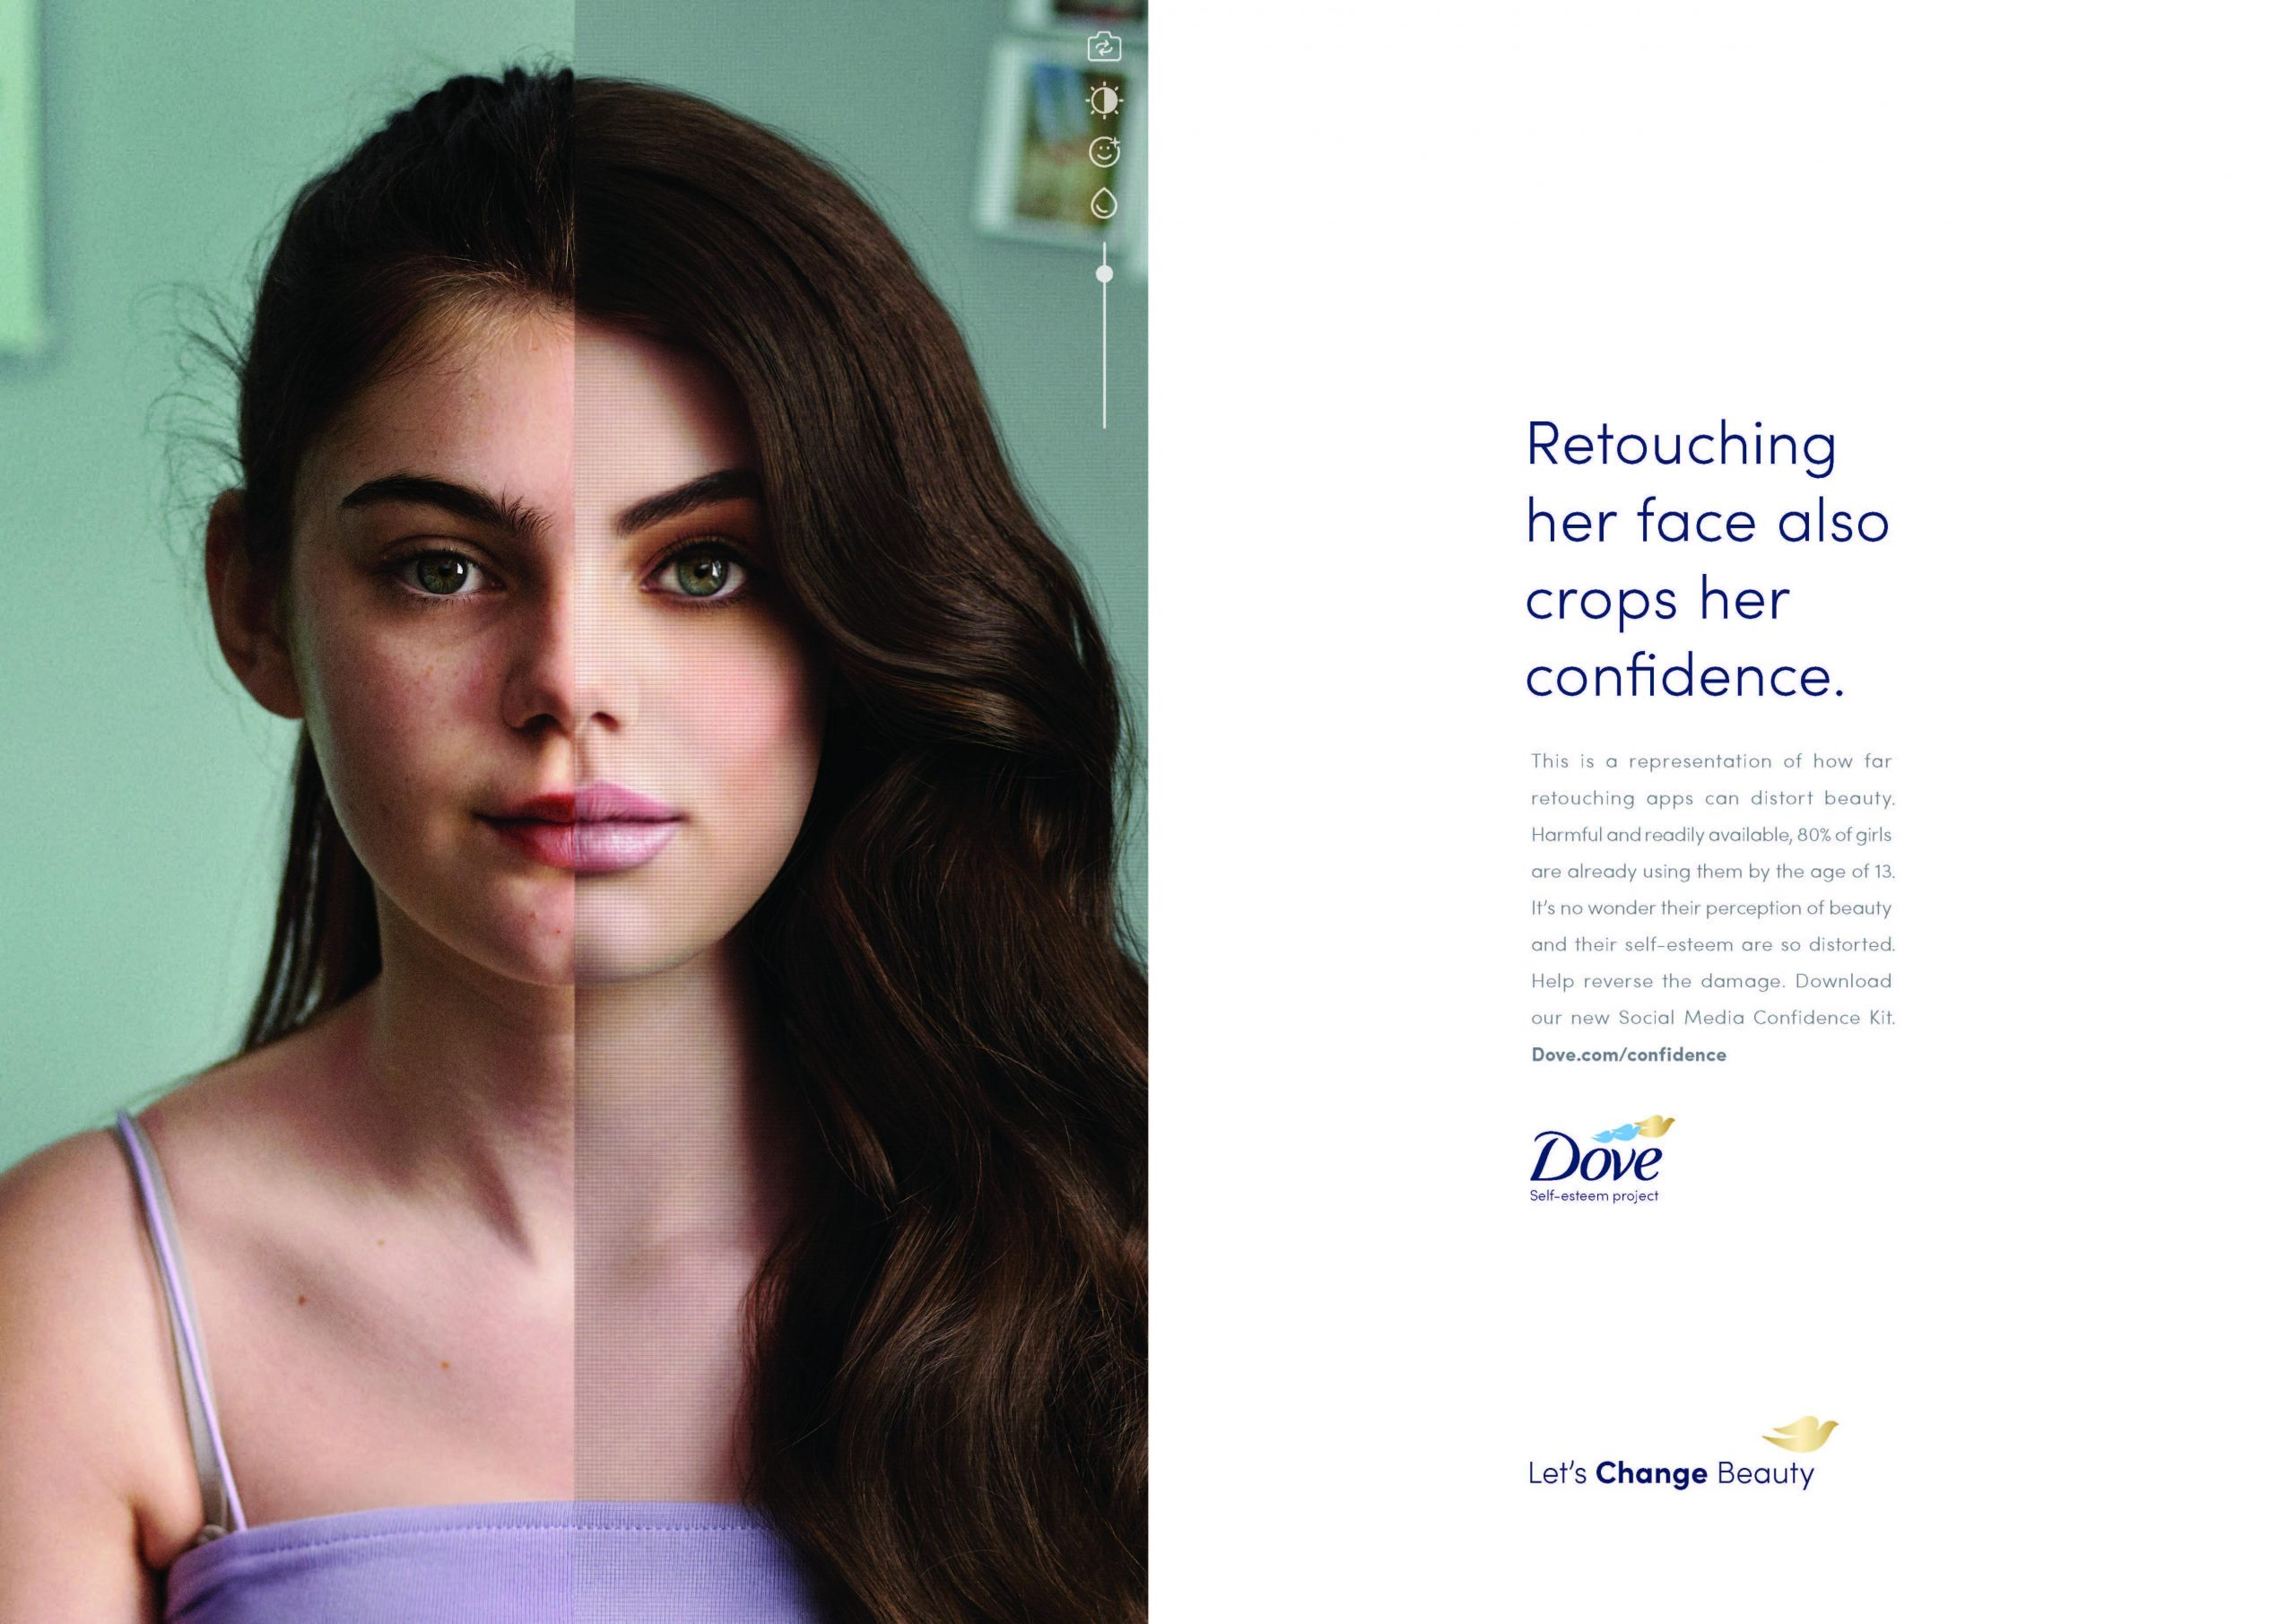 Dove and Reverse selfie: The campaign that will give a lot to talk about